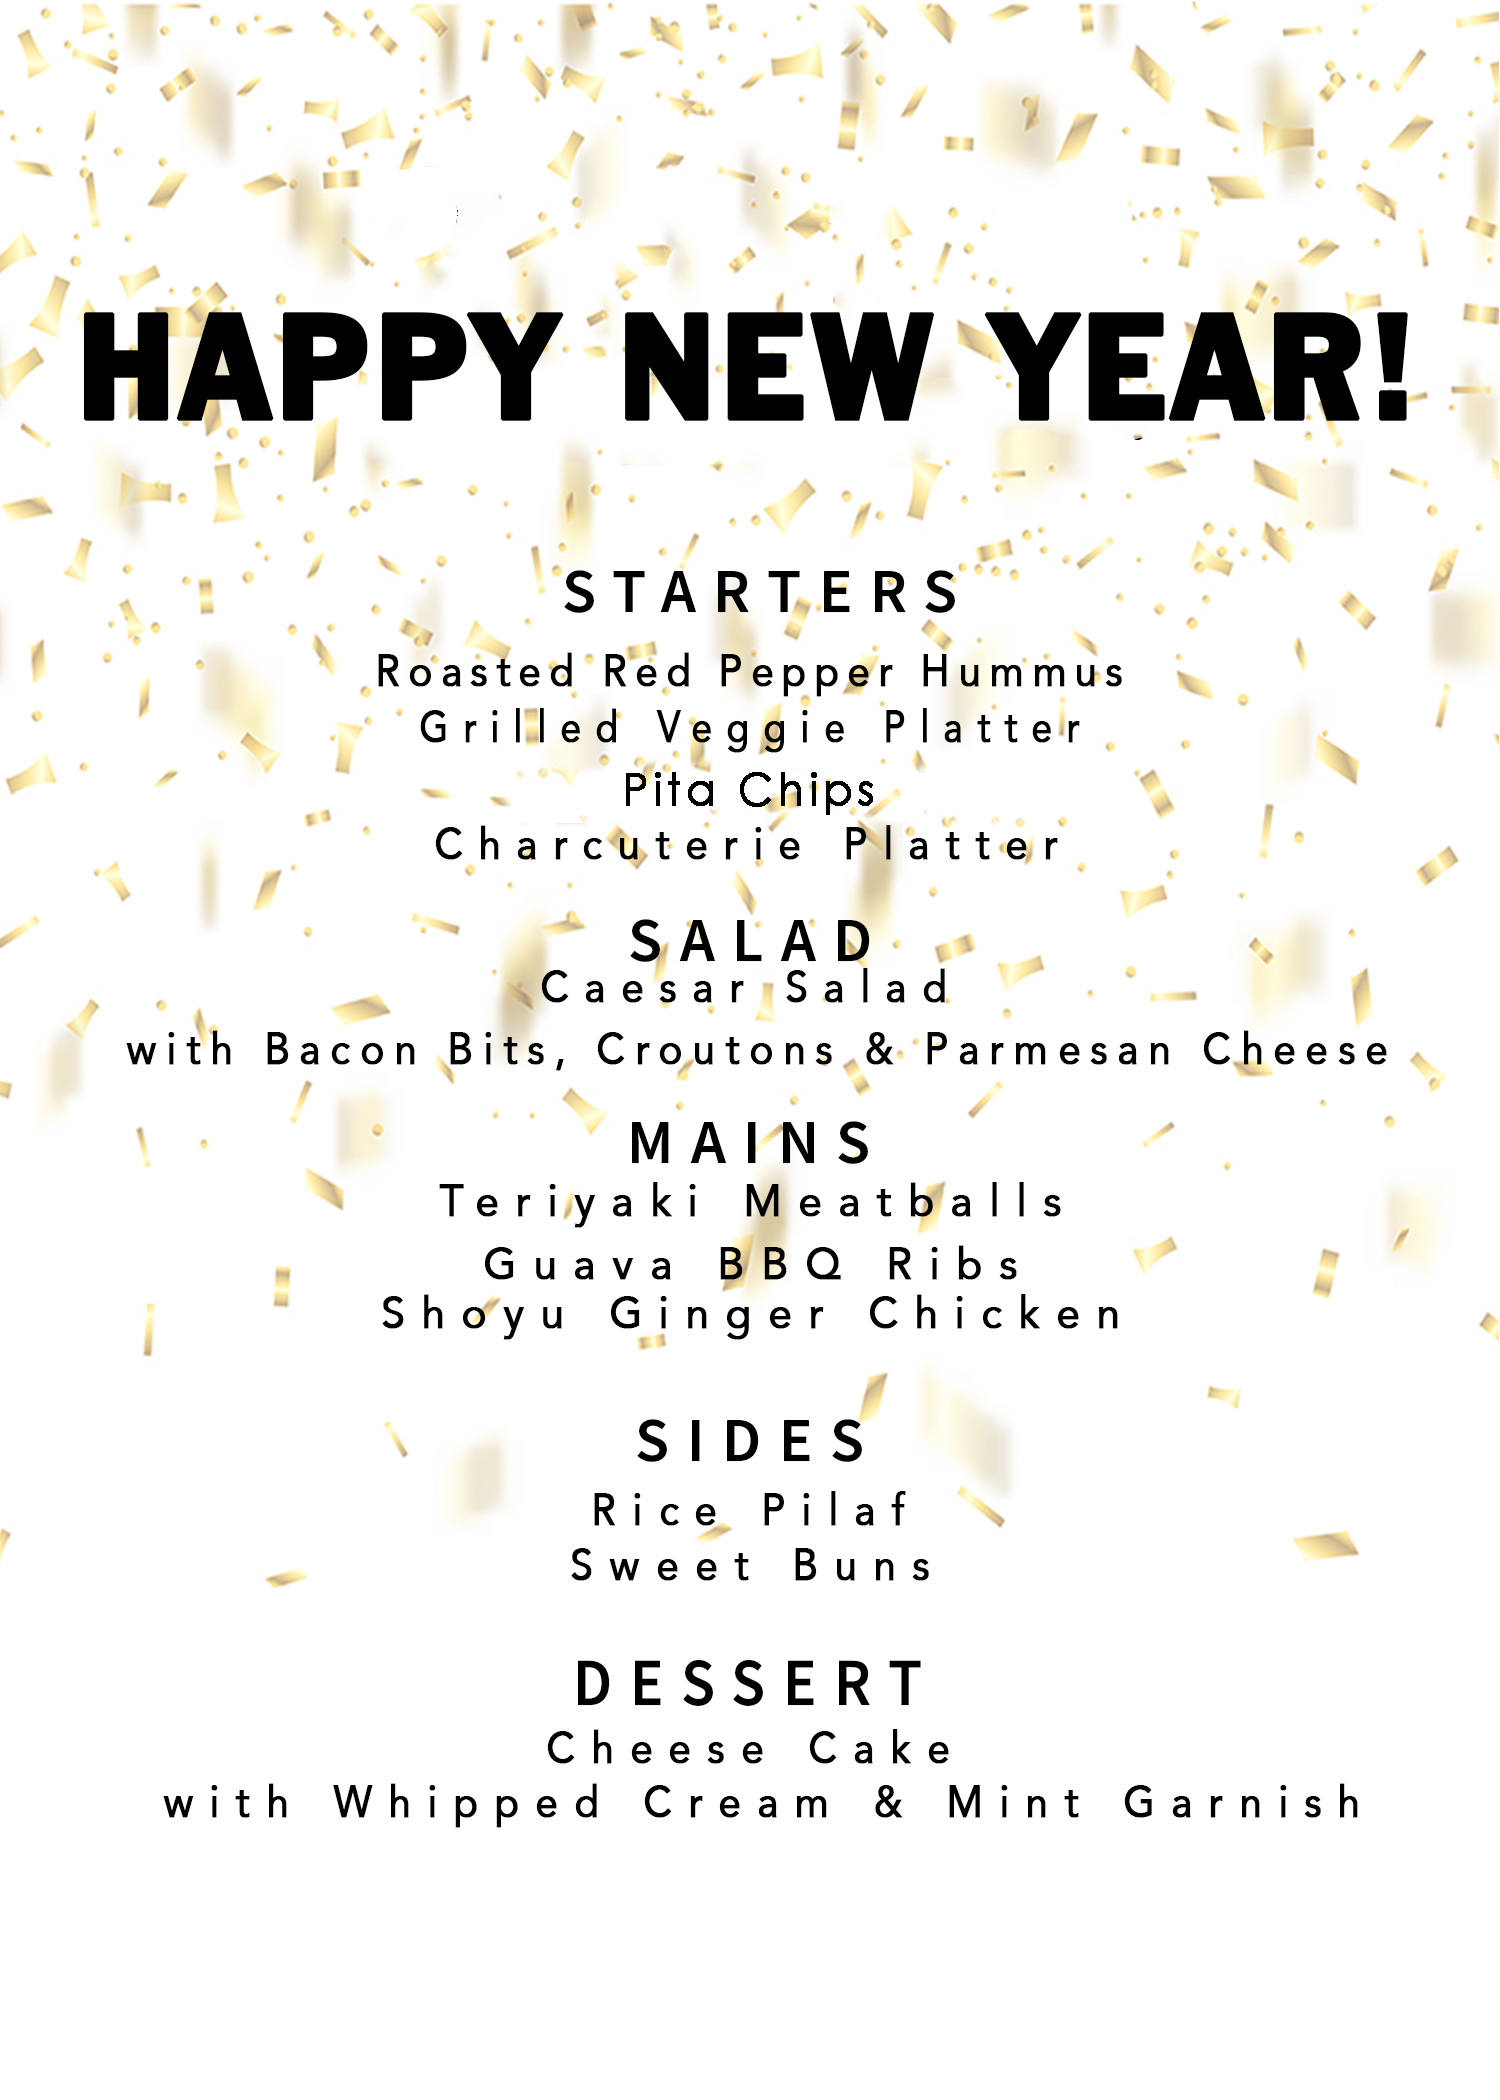 Click here to Download New Year's Eve Dinner Menu